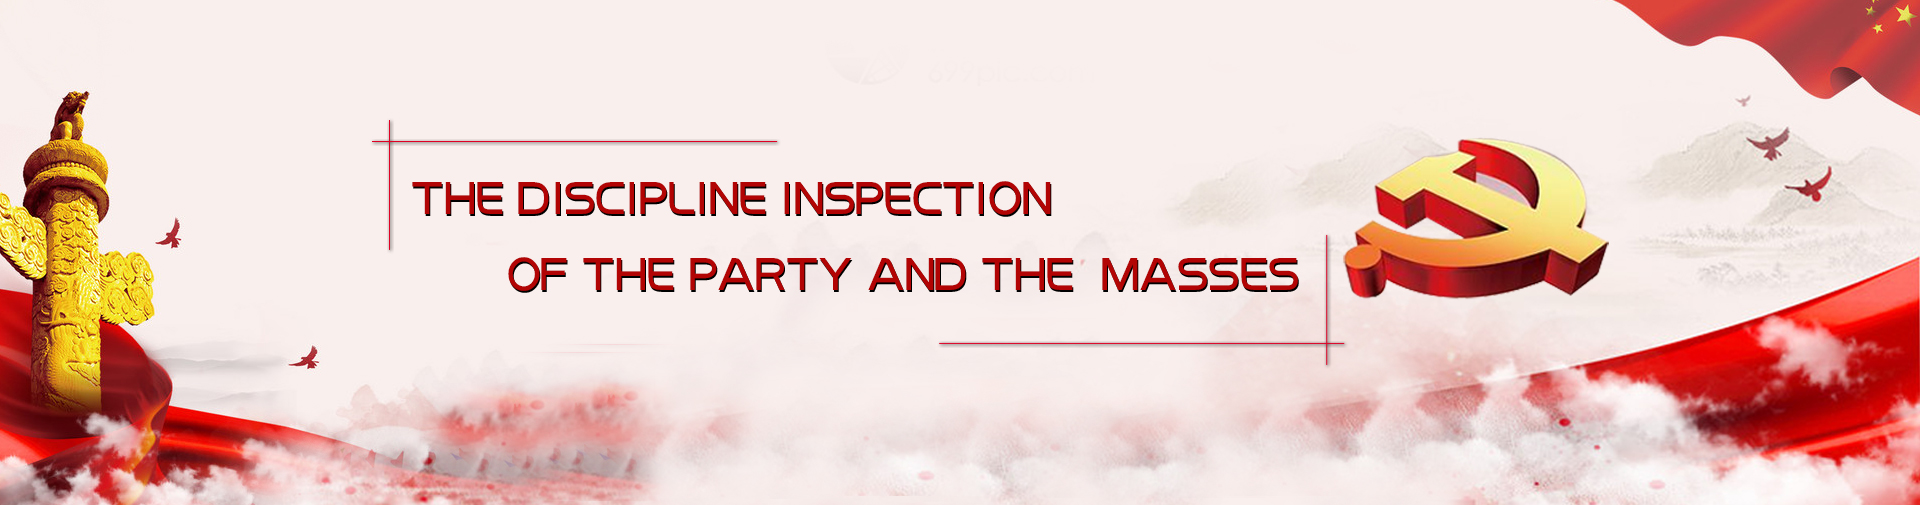 The discipline inspection of the party and the masses